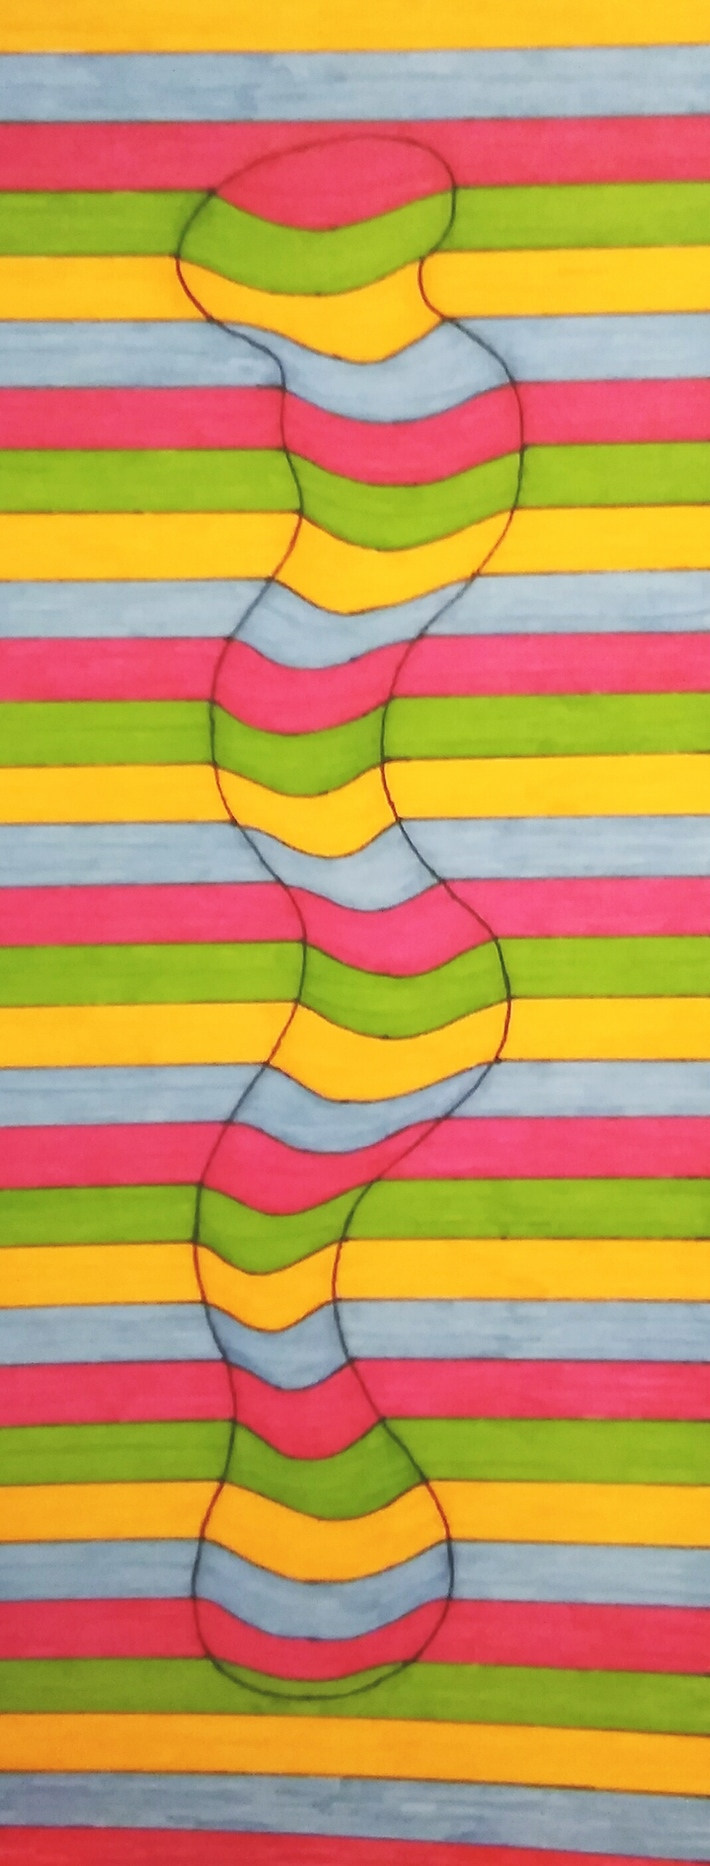 Rainbow Of Squiggly Lines Caught Within the Row